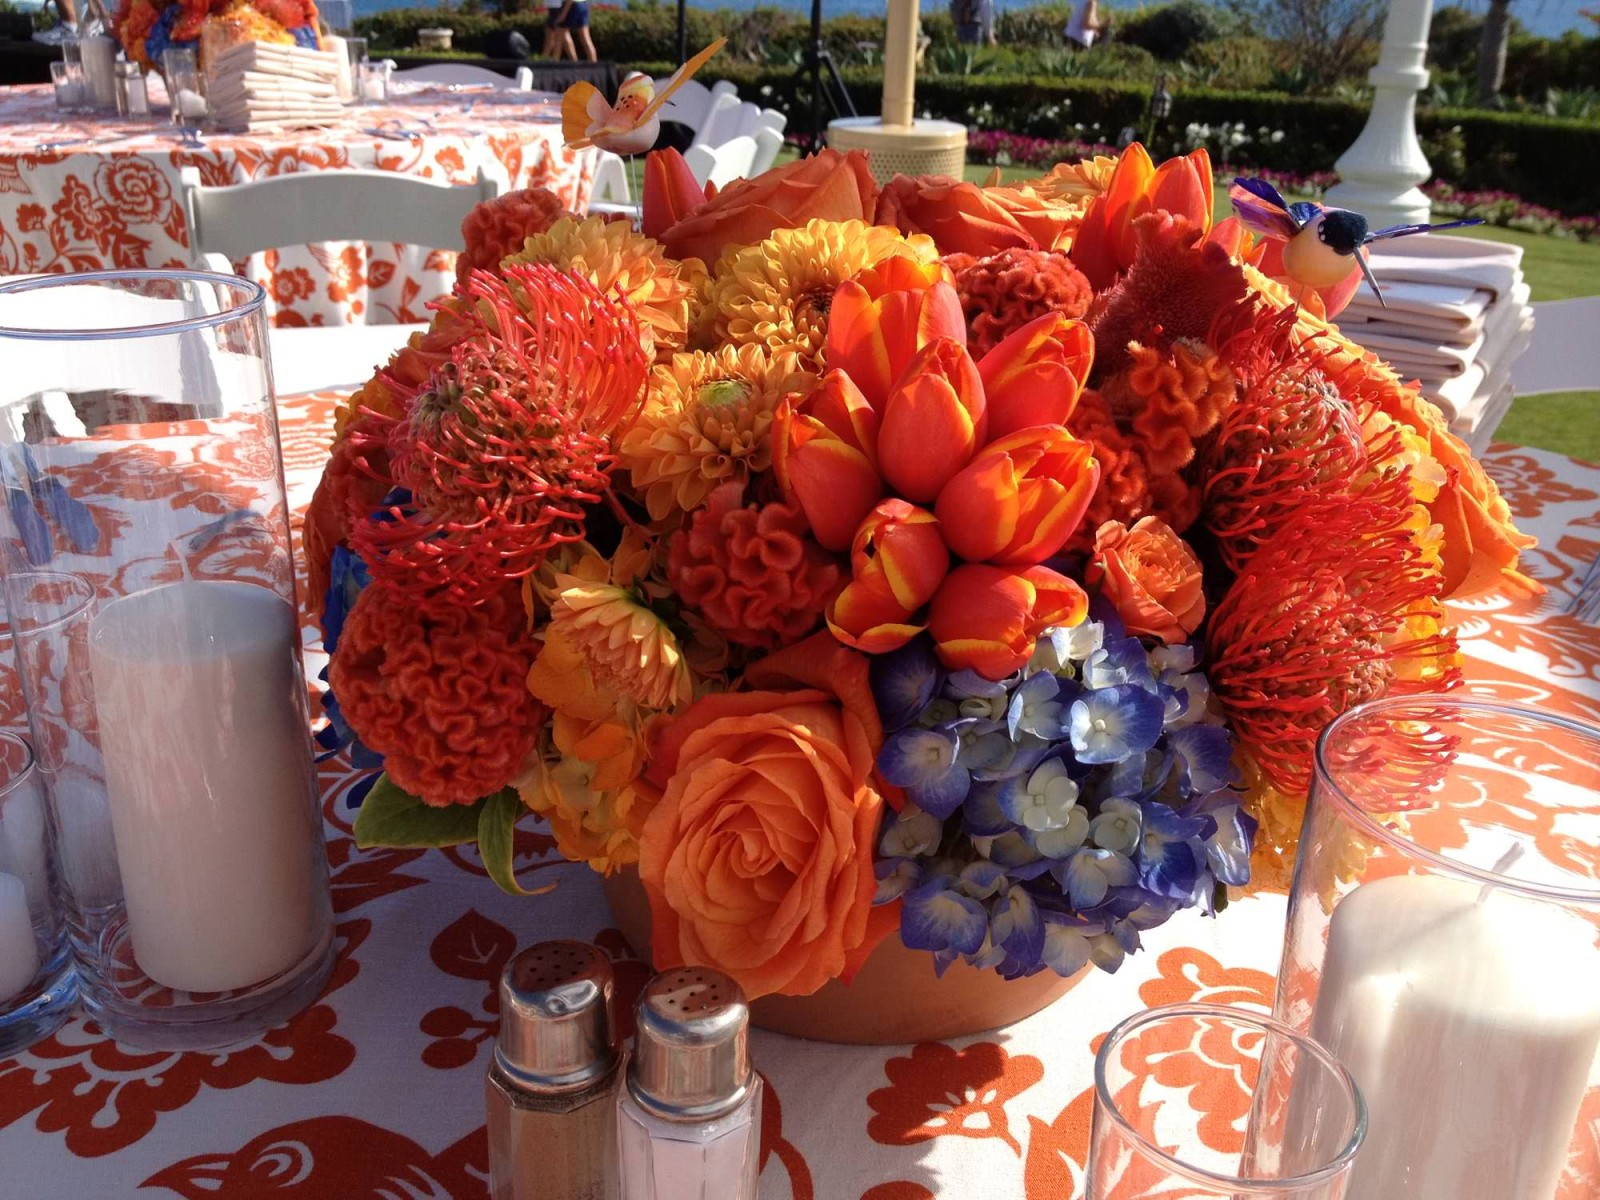 nisies-enchanted-florist-orange-county-Ariel-Investments-Montage-Laguna-event-6